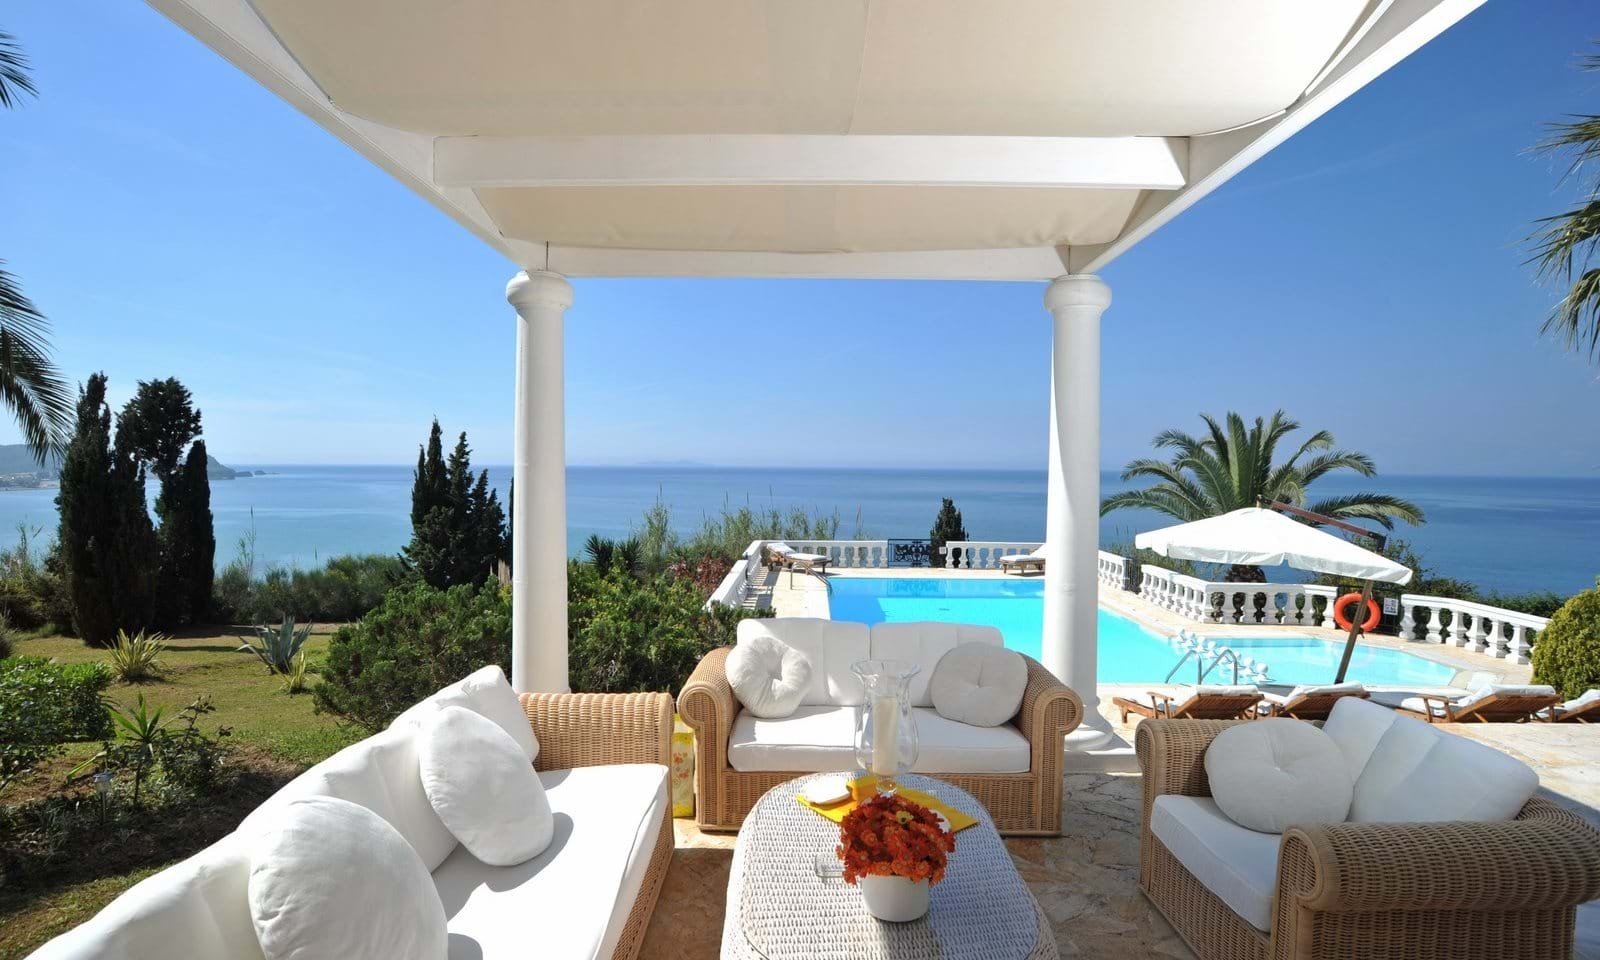 Luxury property by the sea in Corfu